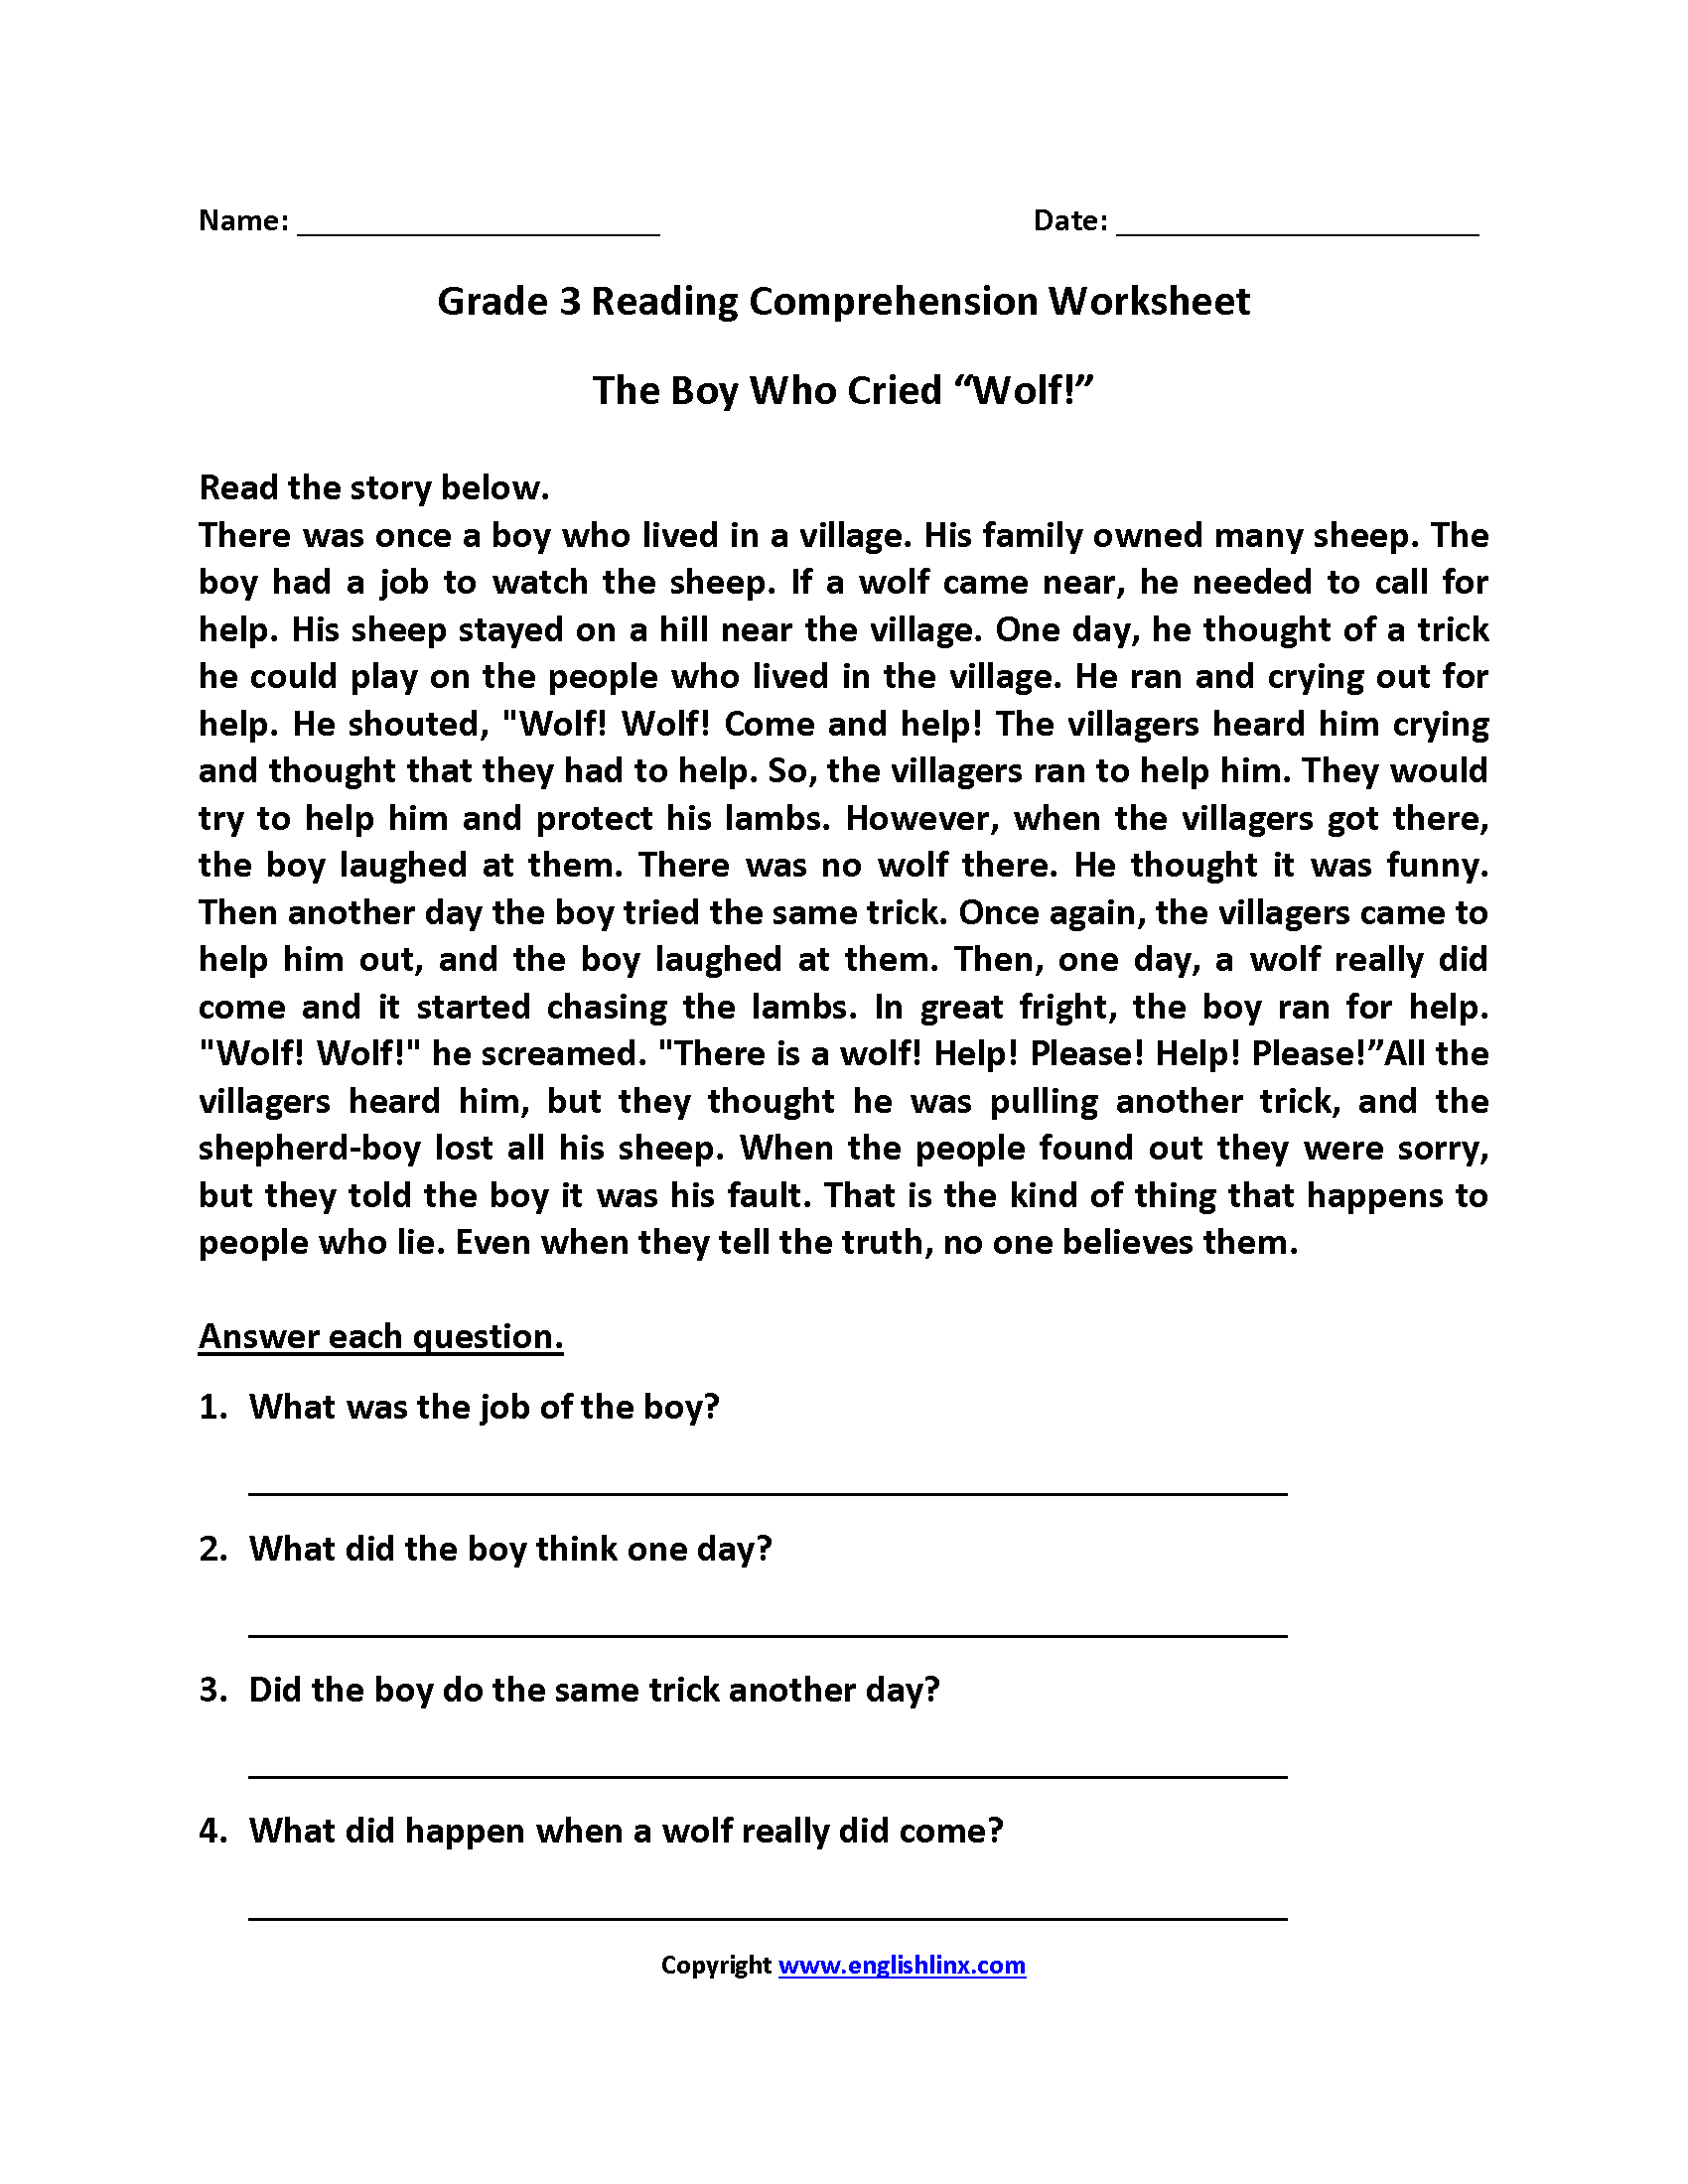 Worksheets Third Grade Reading Comprehension Worksheets english worksheets reading third grade worksheets